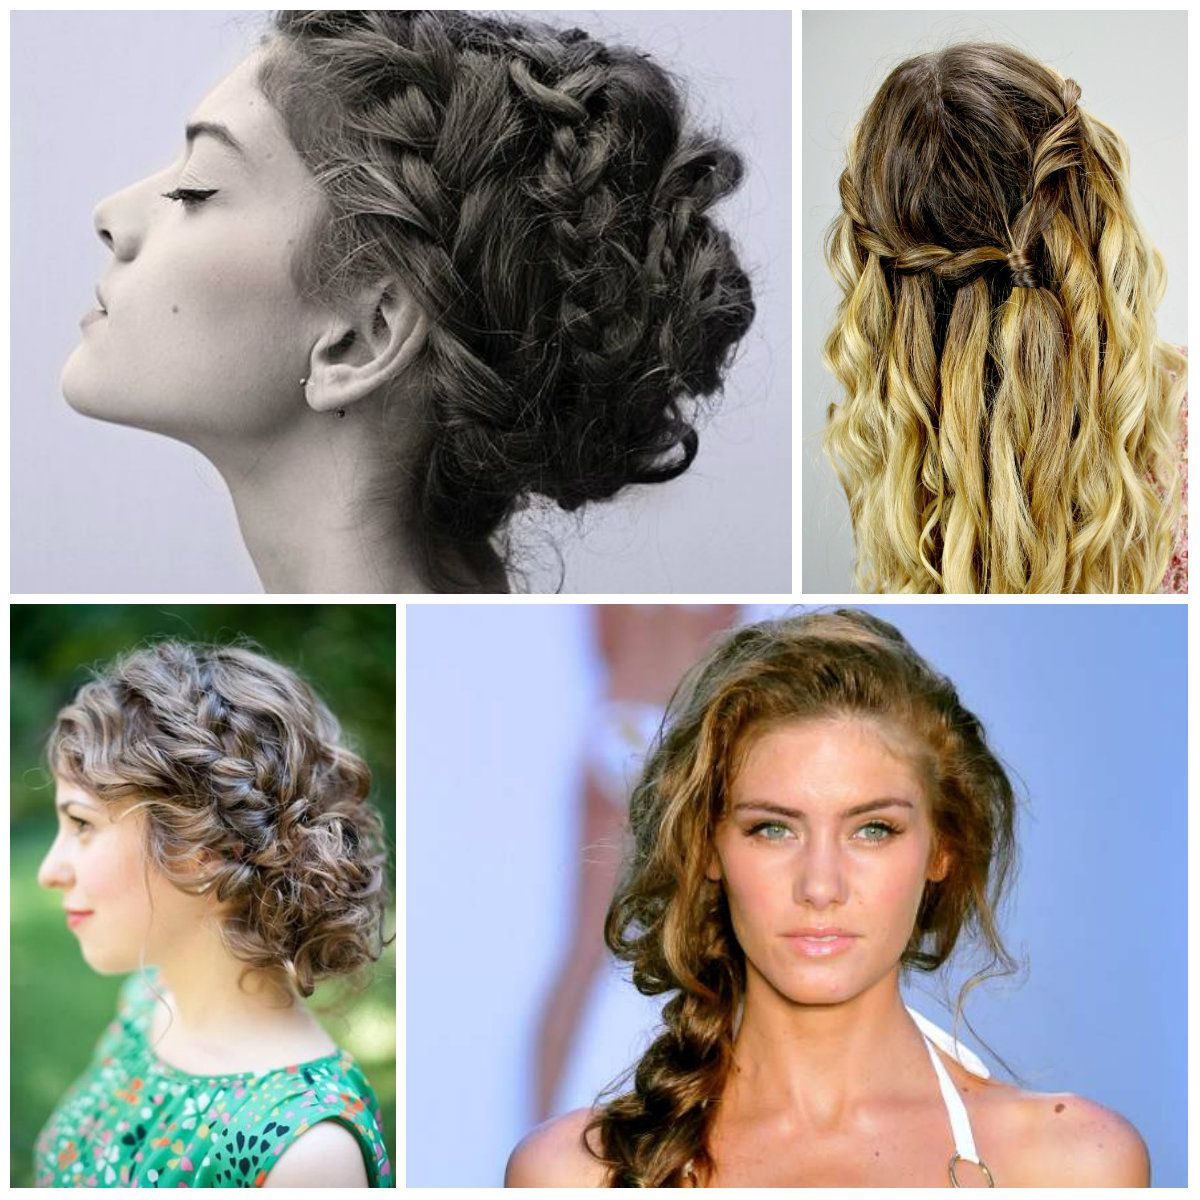 Astounding Cozy Braided Hairstyles For Curls 2016 Hairstyles 2016 New Hairstyle Inspiration Daily Dogsangcom